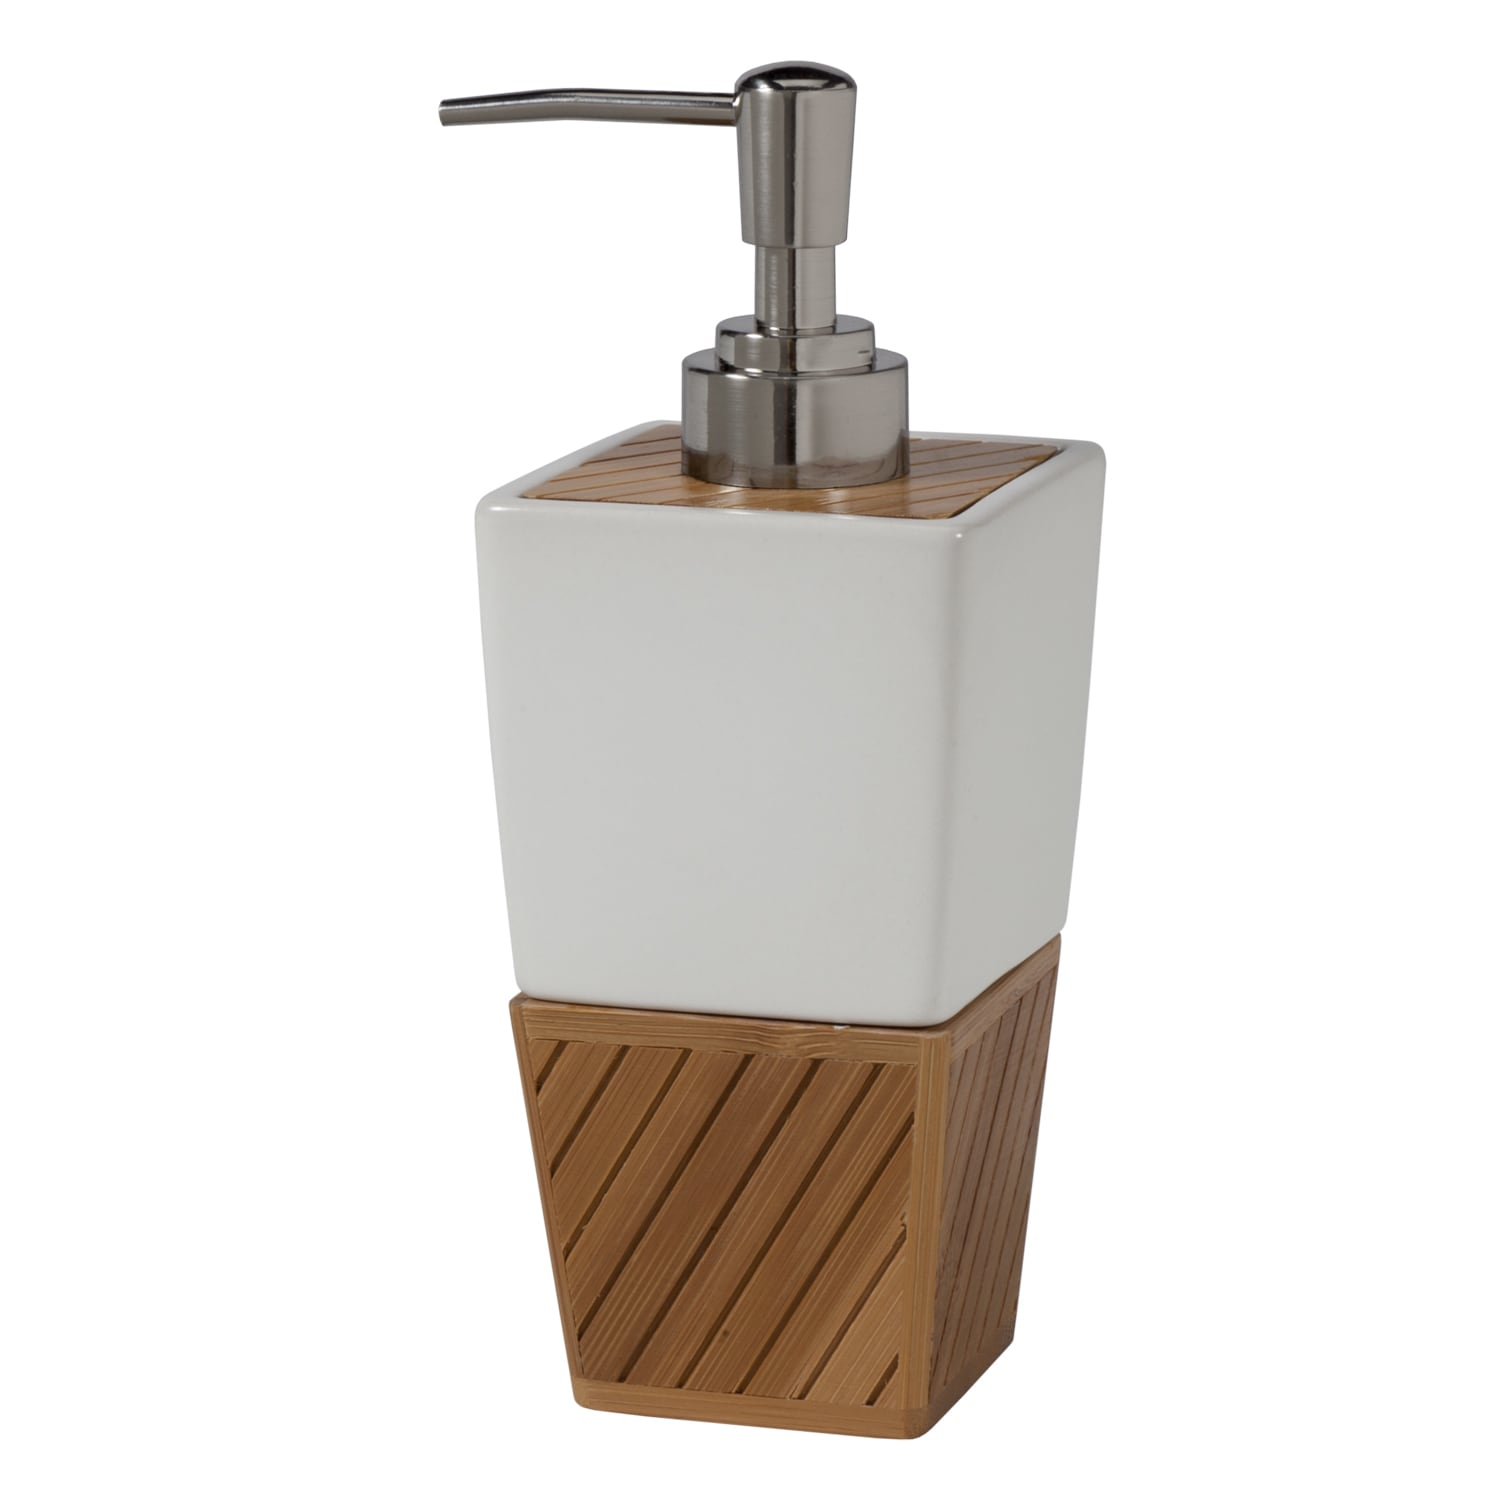 White ceramic bamboo bathroom accessory set ebay for C bhogilal bathroom accessories